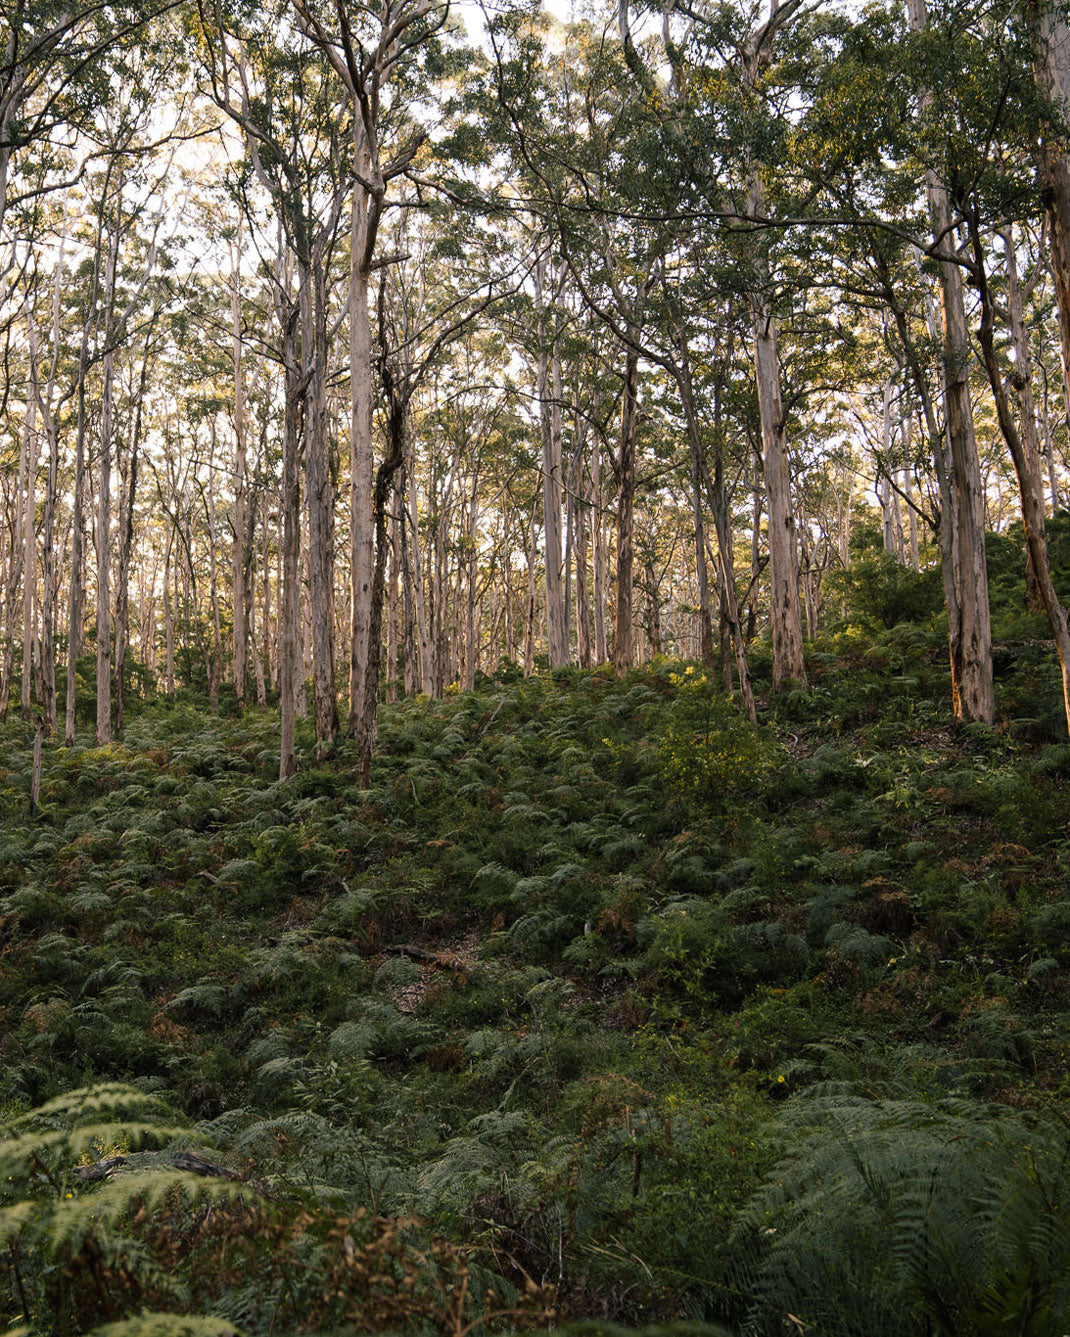 Boyanup forest in South Western Australia